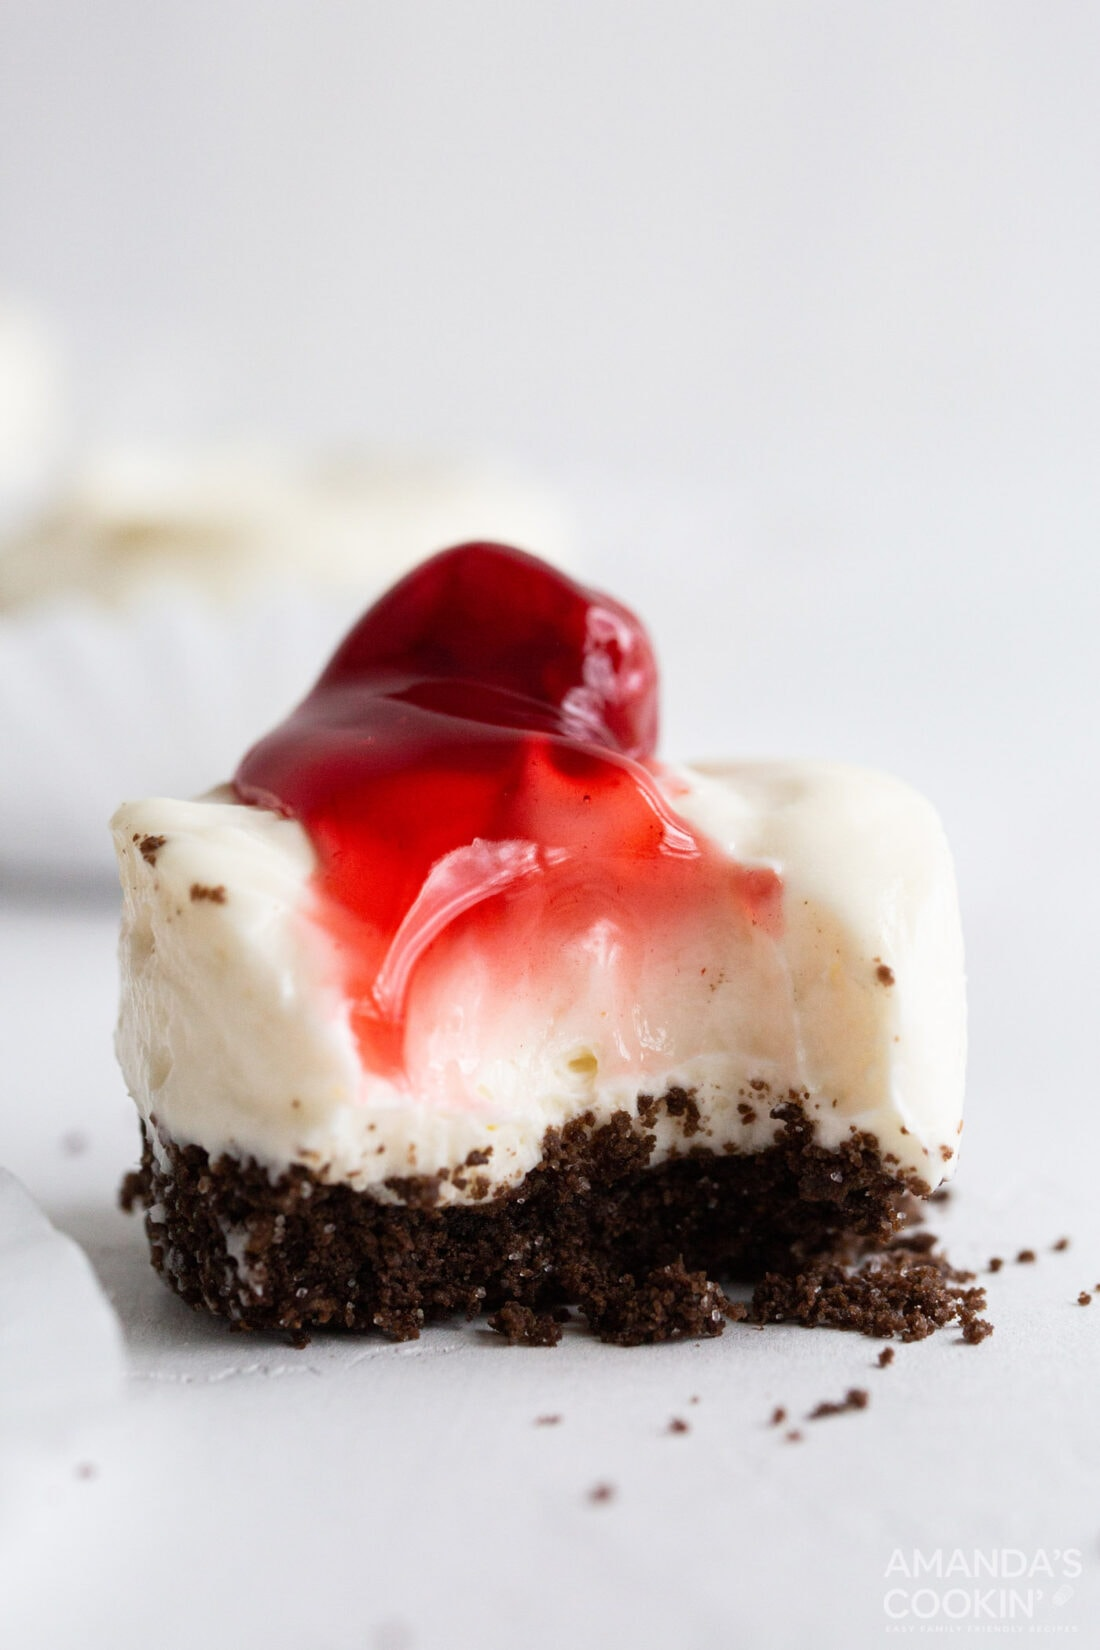 mini cheesecake with a bite out of it